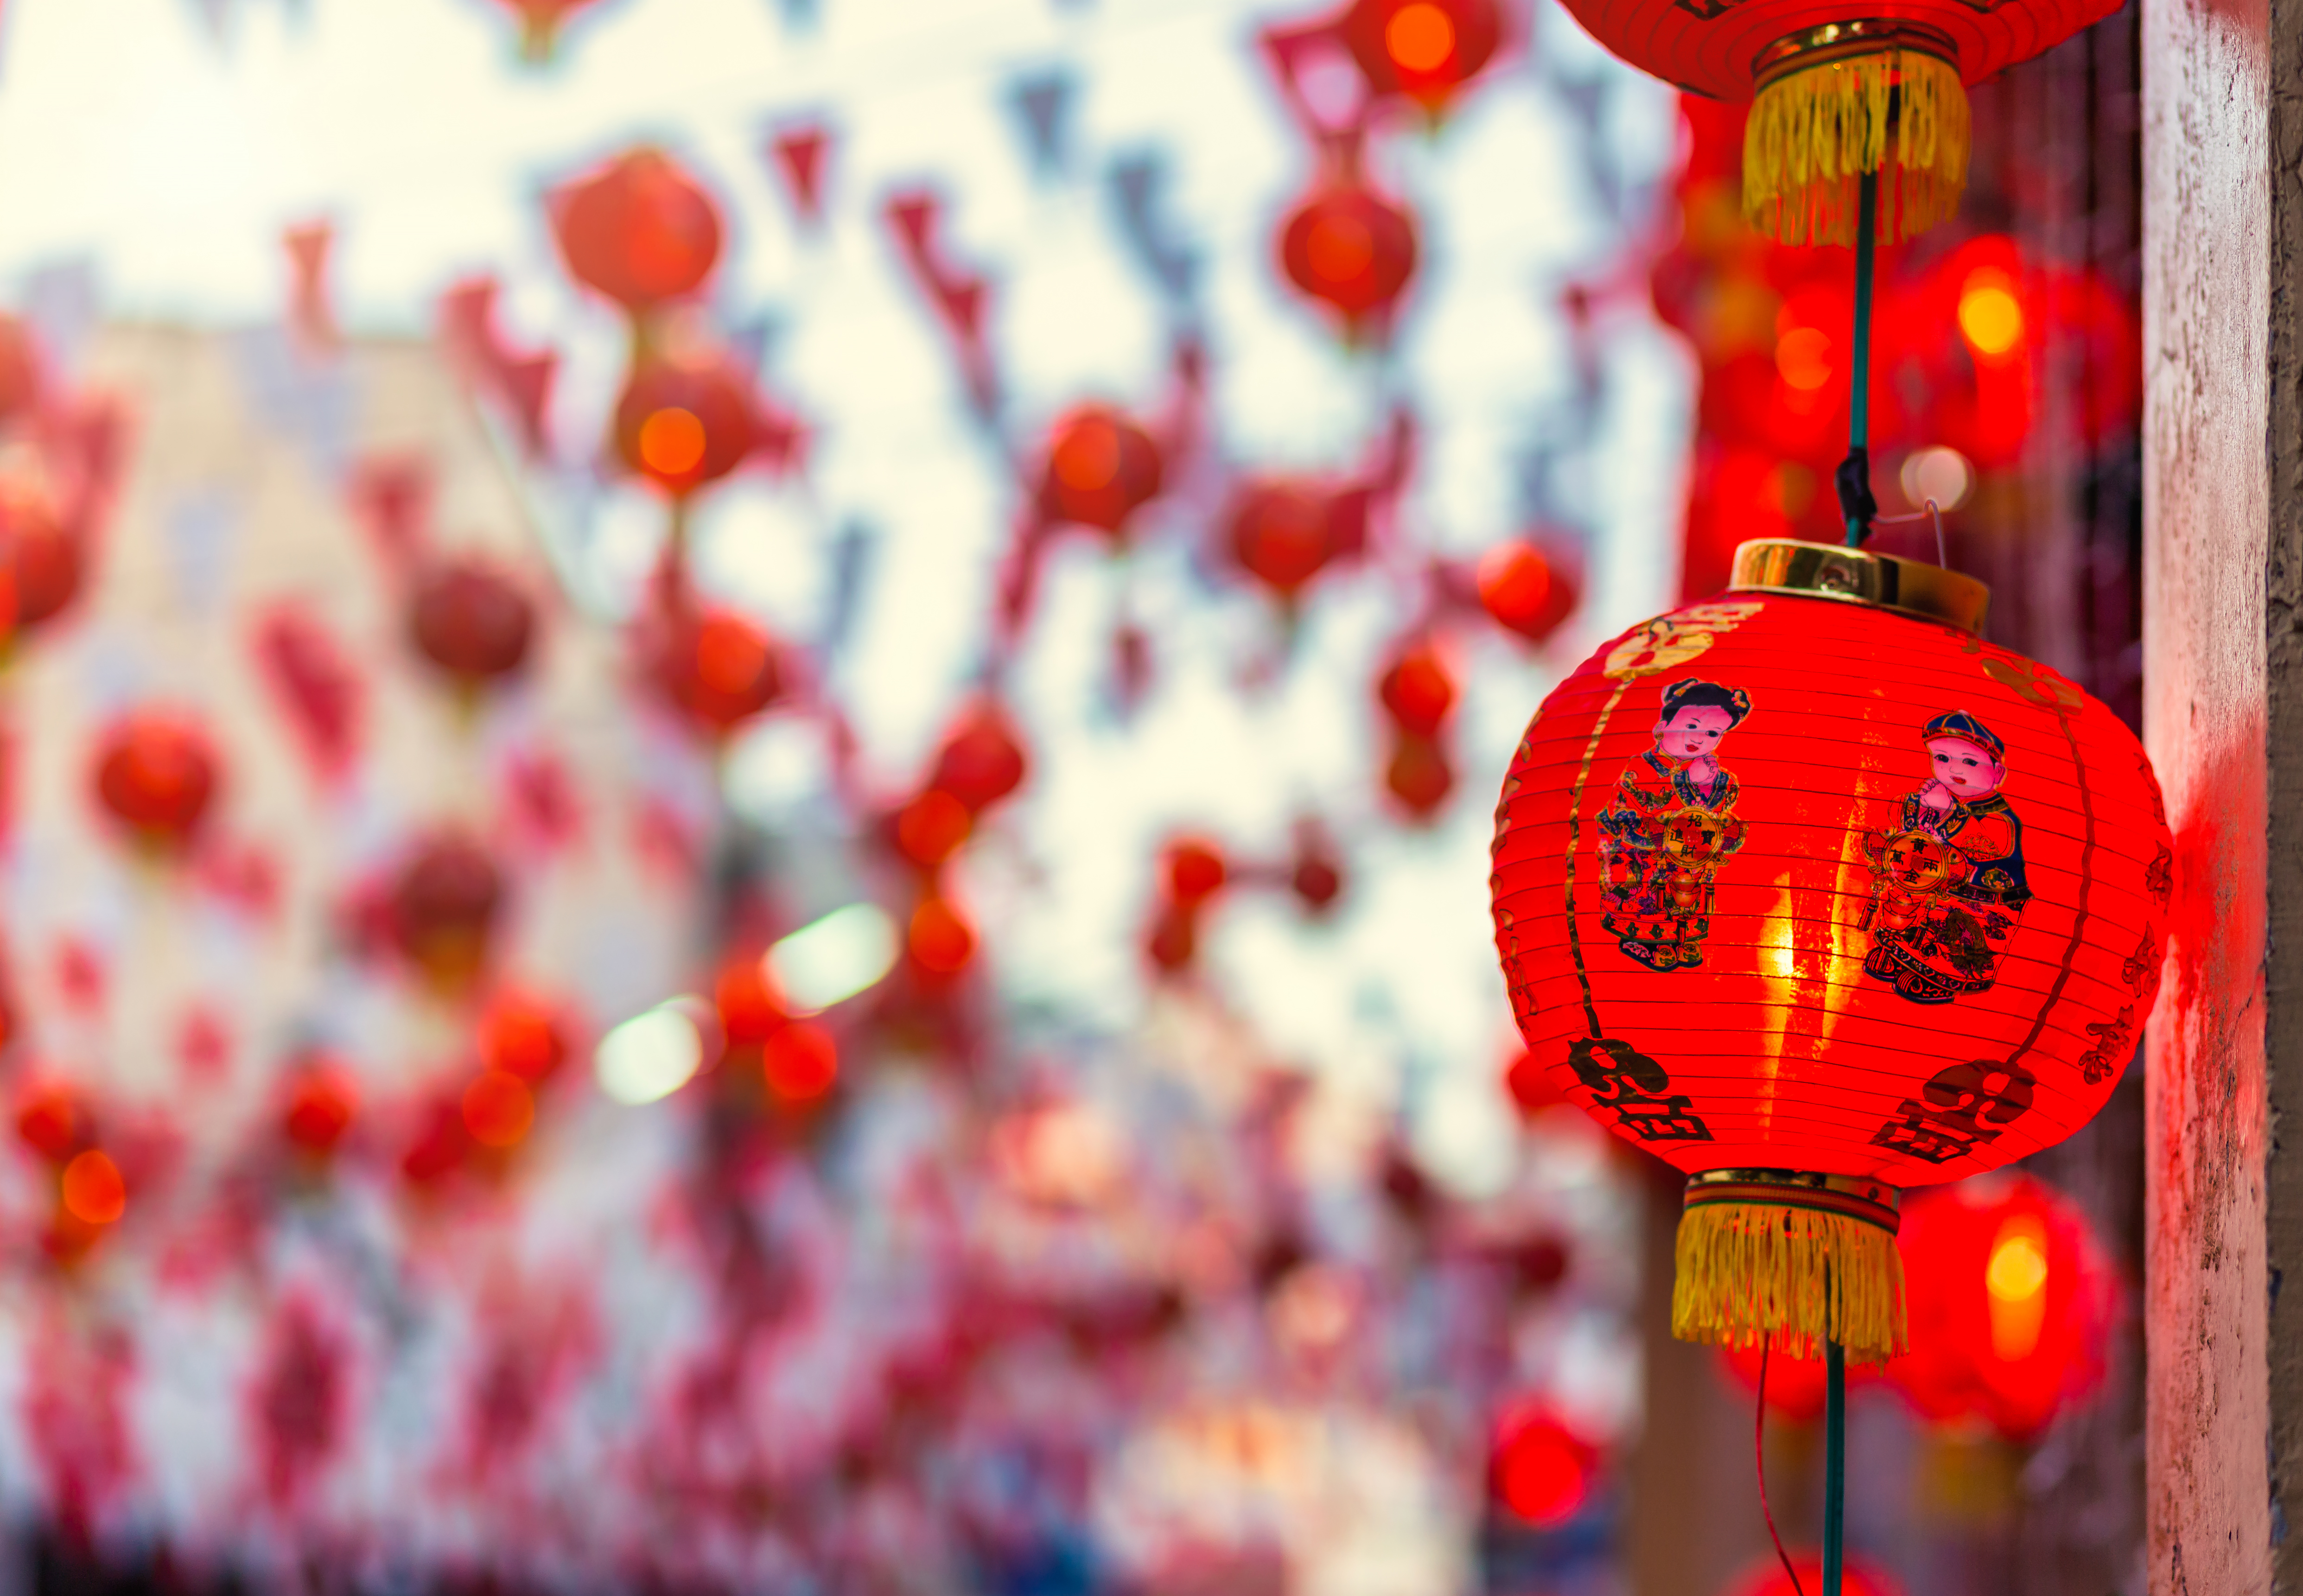 beautiful-red-lantern-decoration-chinese-new-year-festival-chinese-shrine-ancient-chinese-art-chinese-alphabet-blessings-written-it-is-public-place